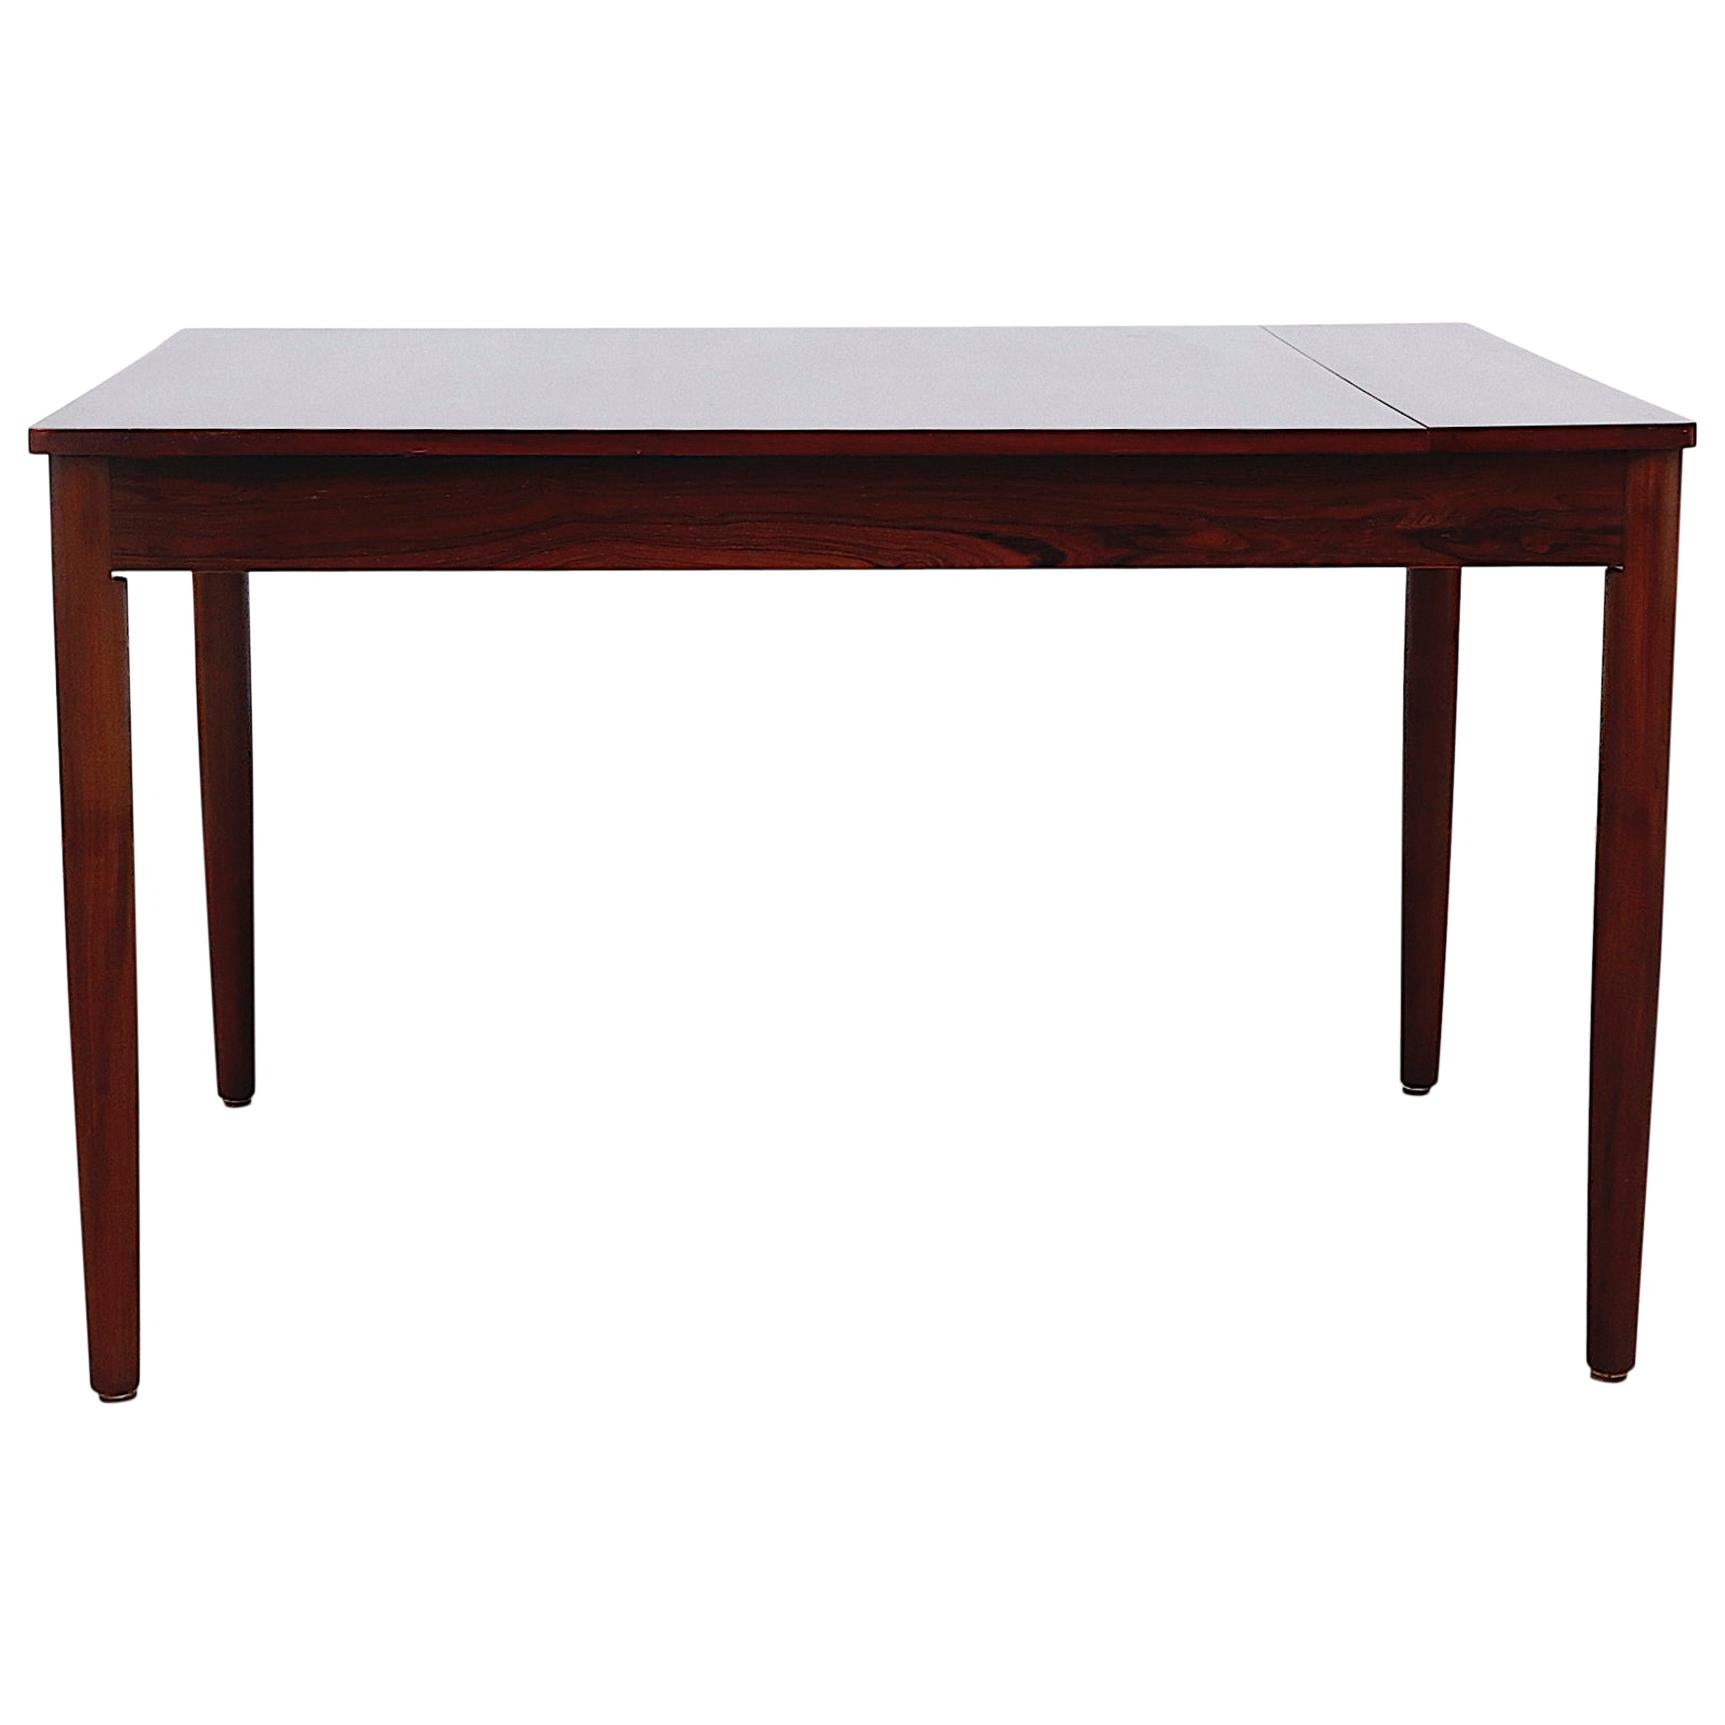 Mid-century Fristho Rosewood Dining Table